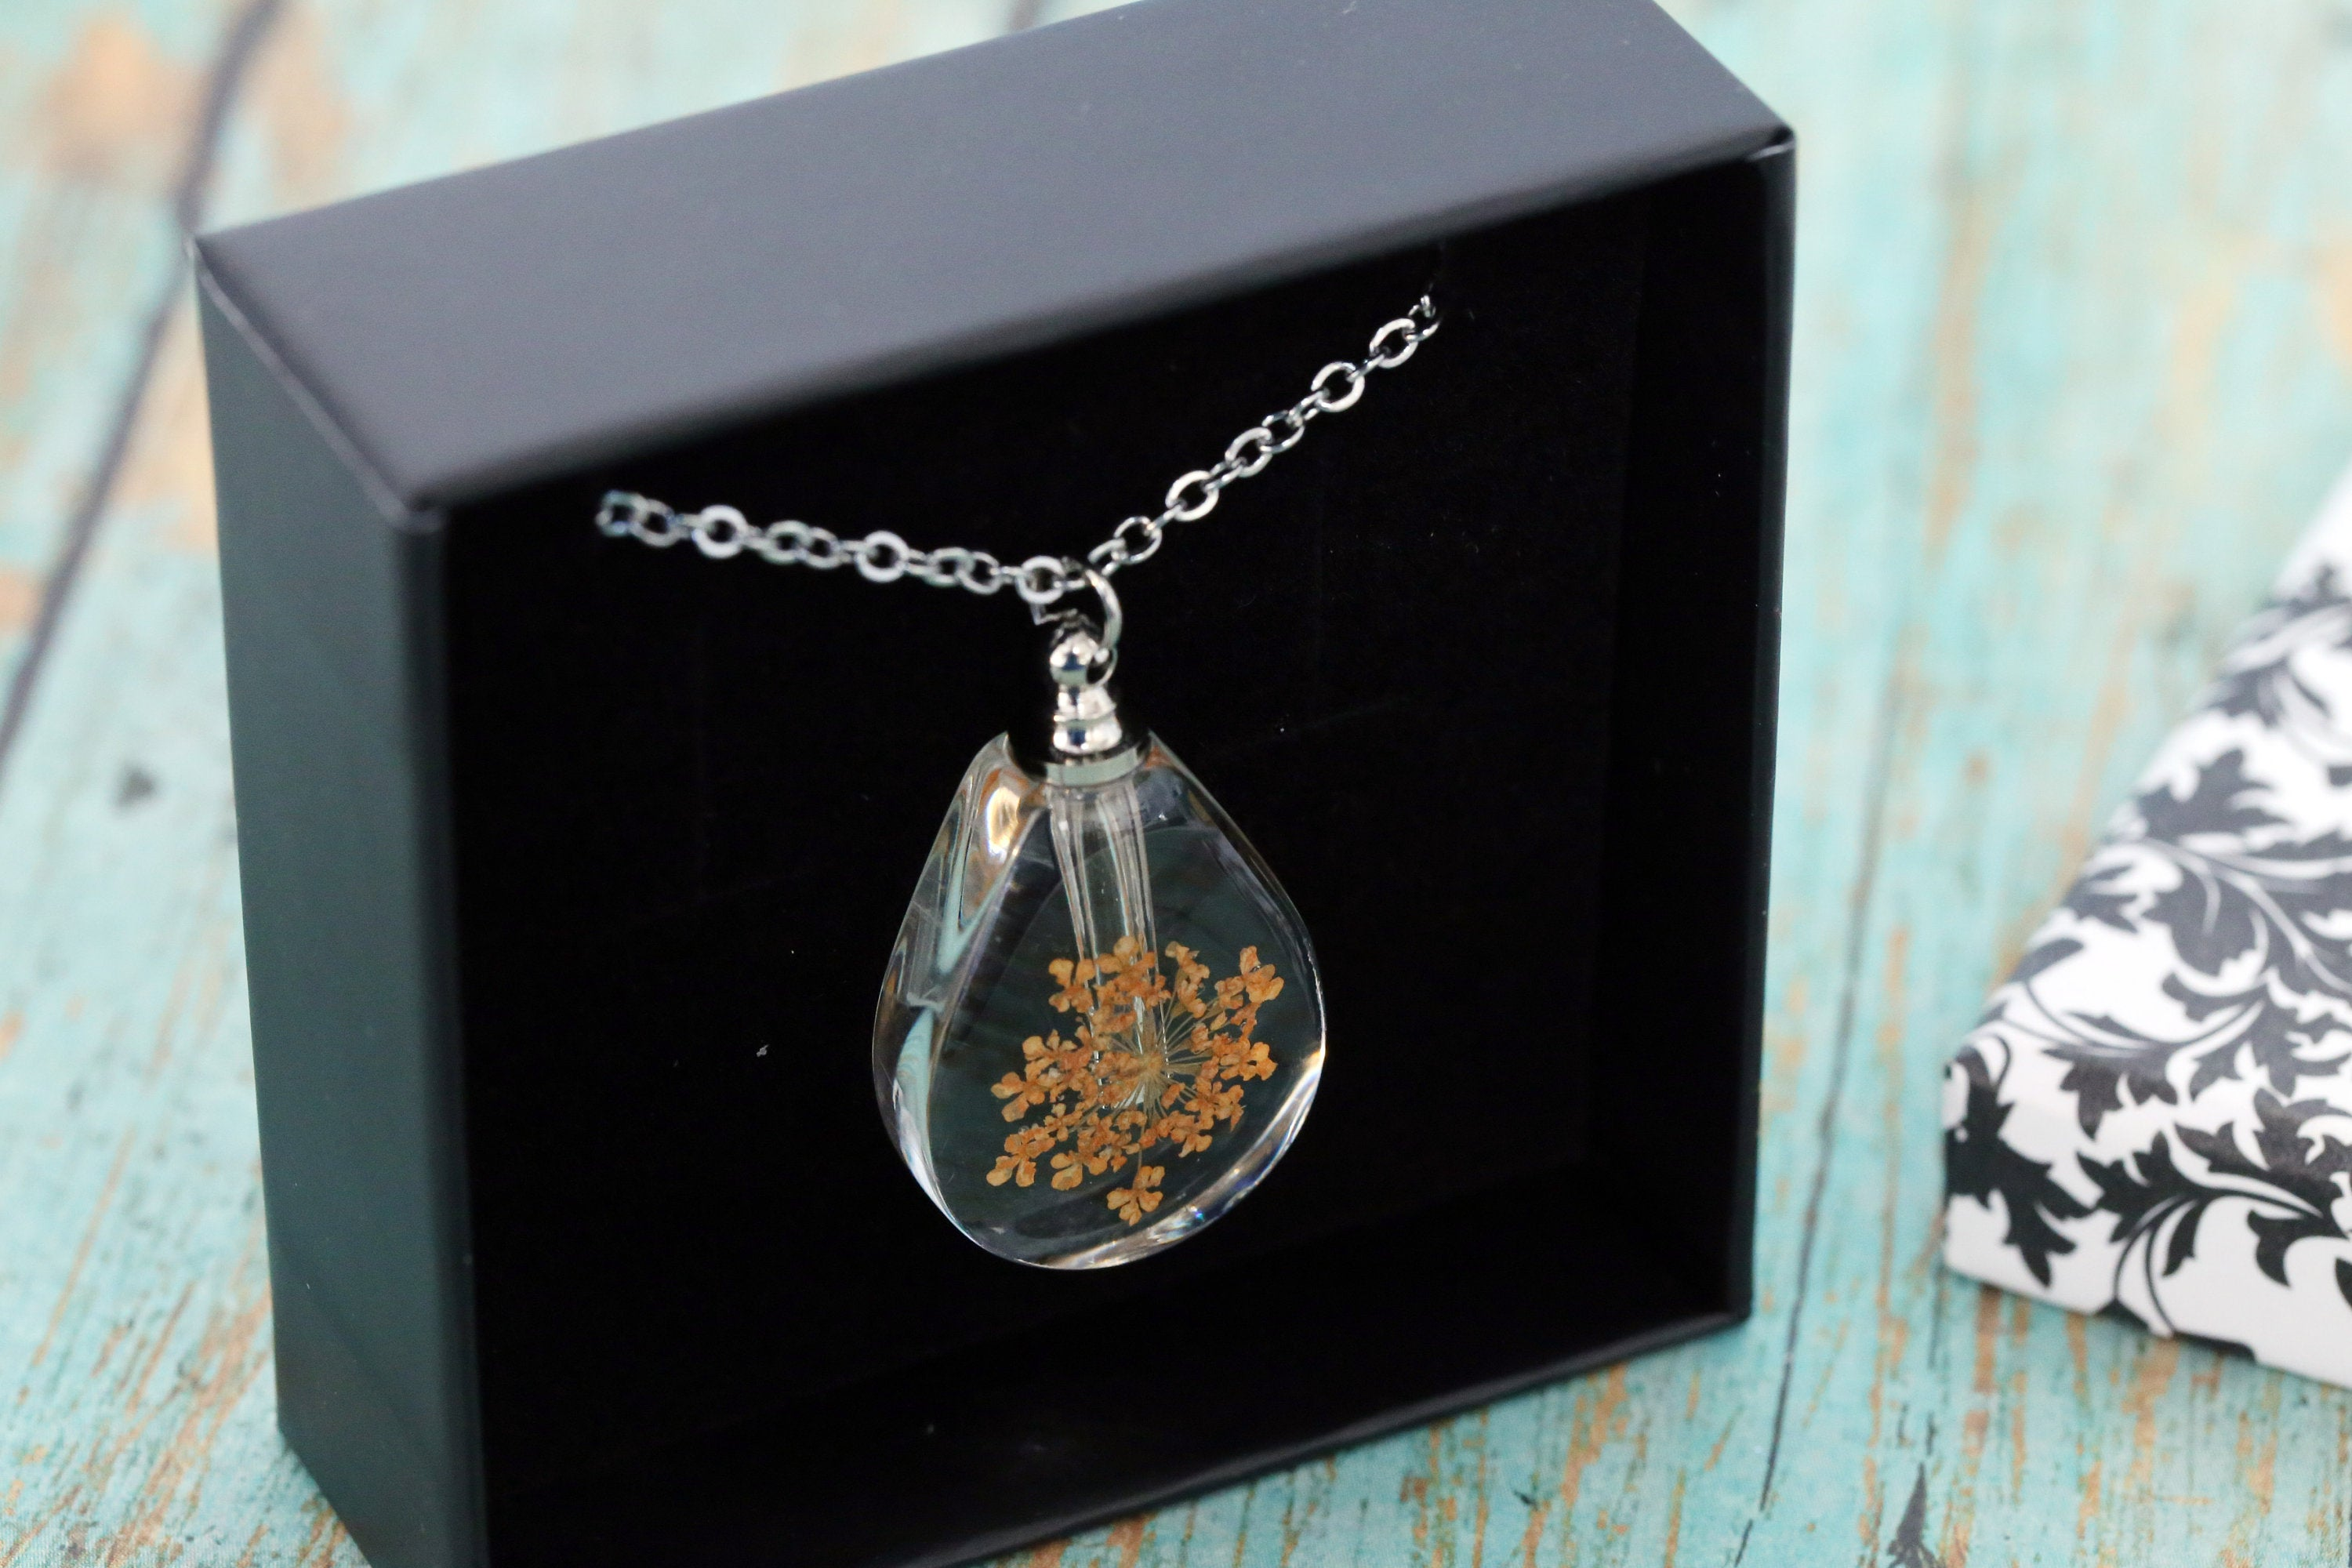 Stainless and Resin Memorial Teardrop Urn Pendant with Orange Dried Flowers - Cremation Jewelry- Ash Necklace - Urn Necklace - Vial Necklace